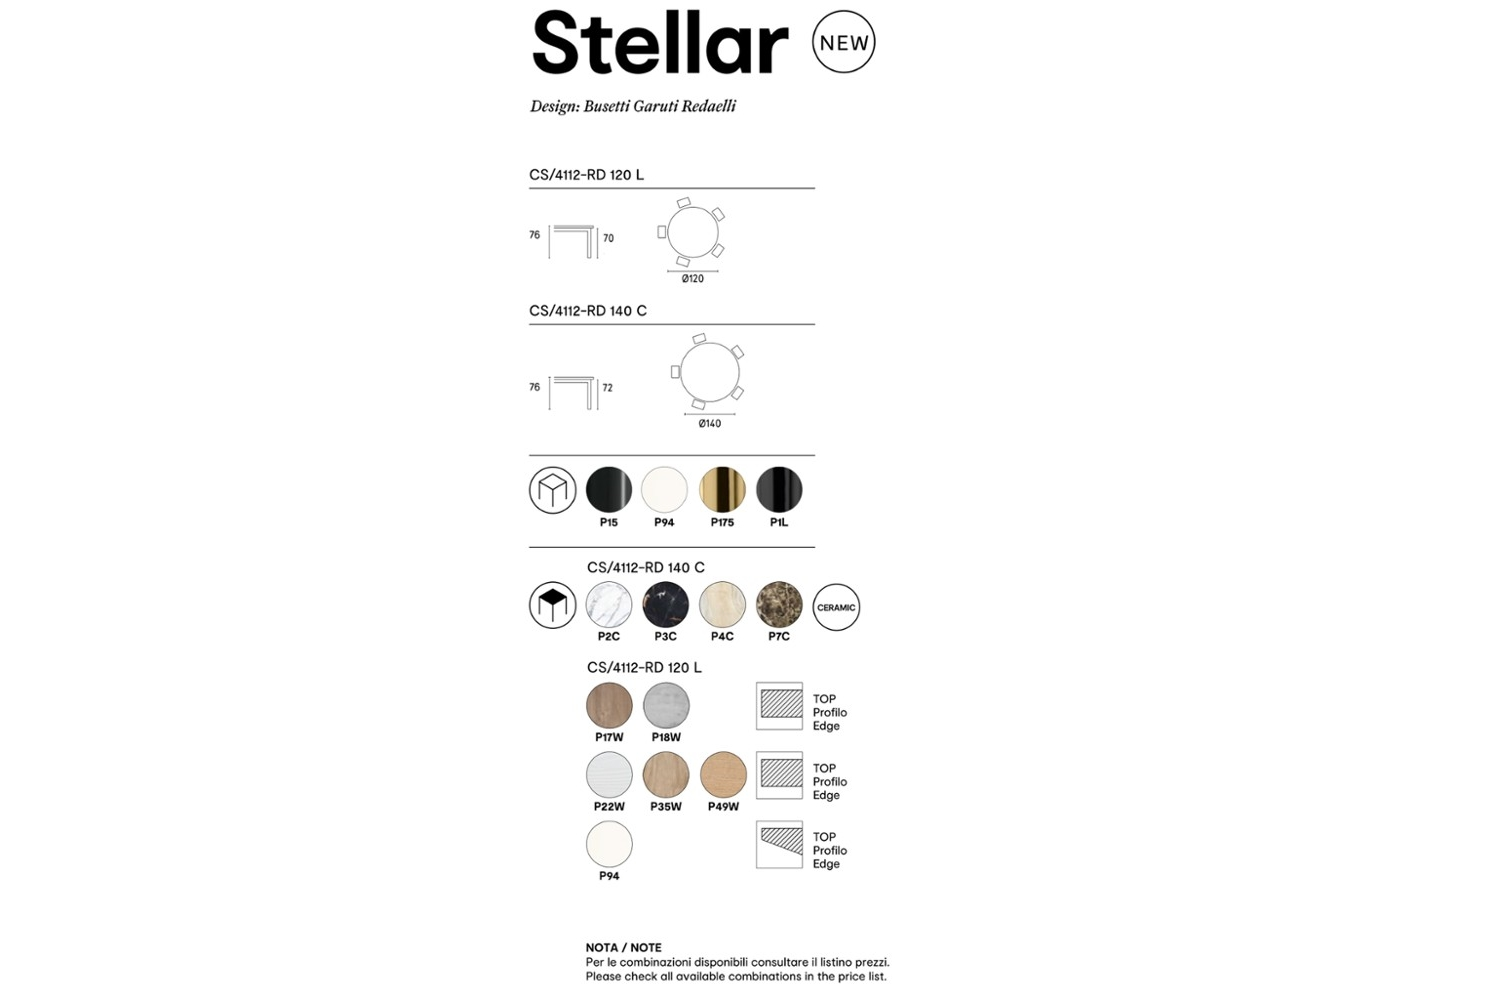 Stellar%20Spec%20sheet.jpg Stellar dining table _ By Calligaris _ Designed by Busetti Garuti Radaelli_ Made in Italy _ Fixed Round Table_ Intertwining elements in base_ Cosmic inspired_ Metal base Stellar%20Spec%20sheet.jpg